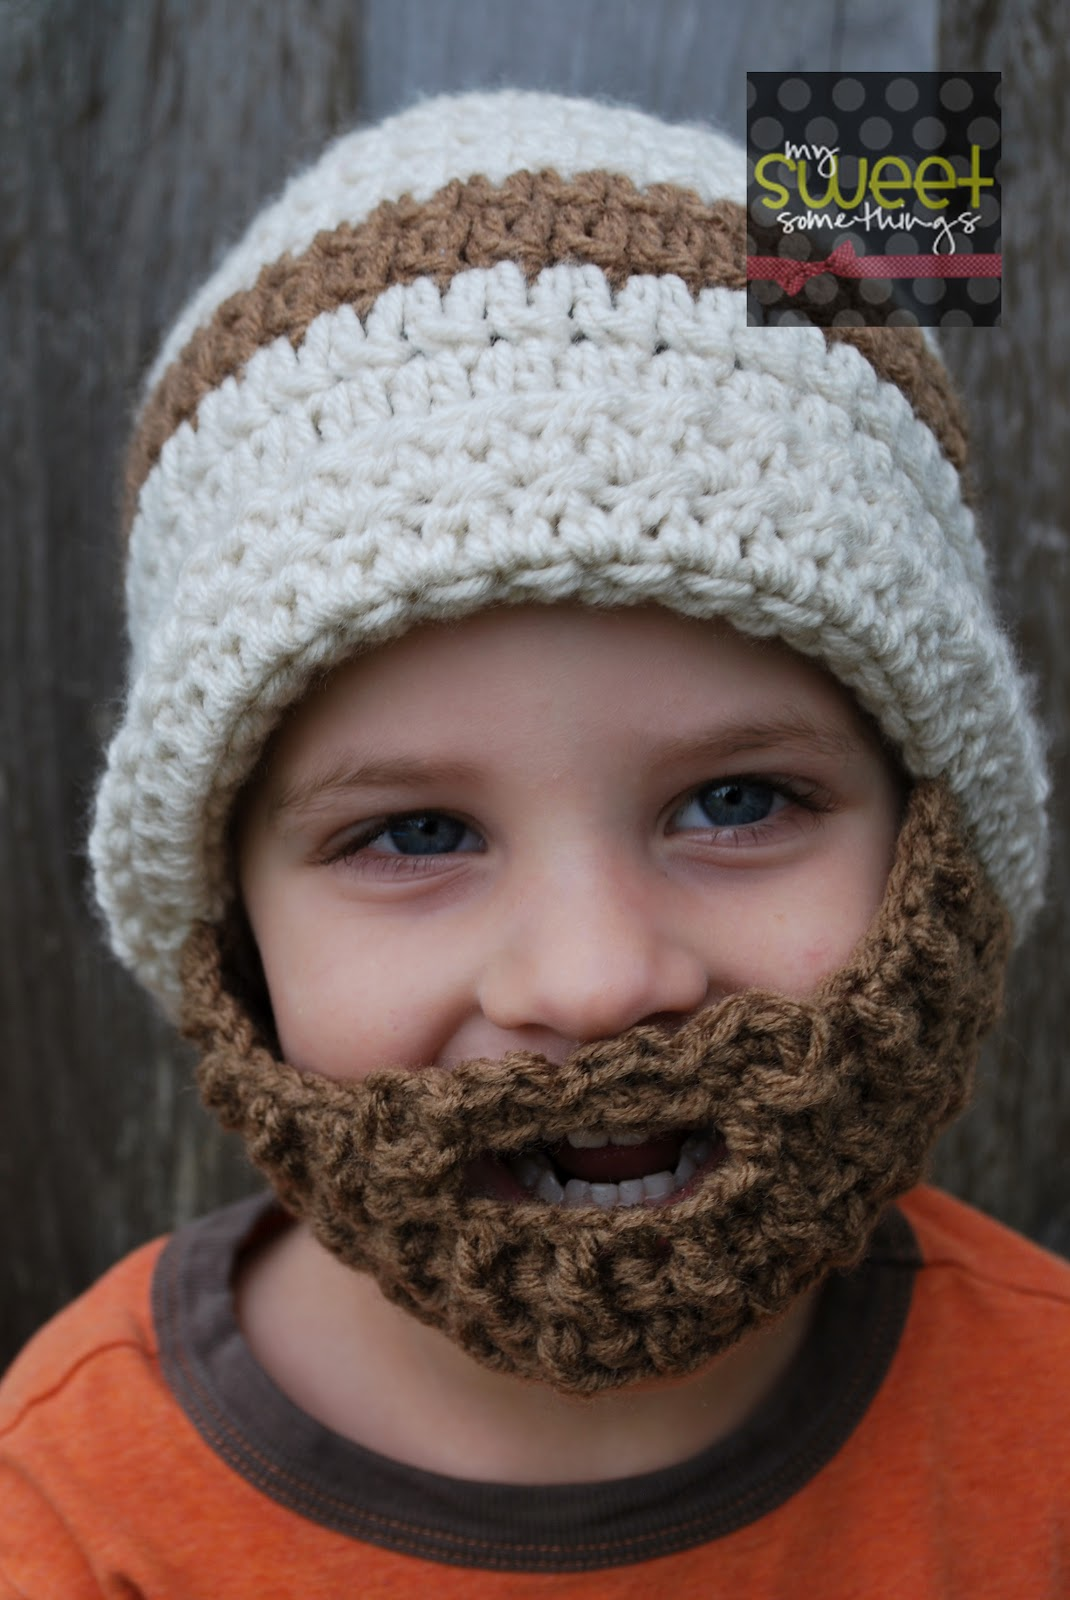 Free Crochet Patterns Hats With Beards : My Sweet Somethings: Bearded Hat for Kids!